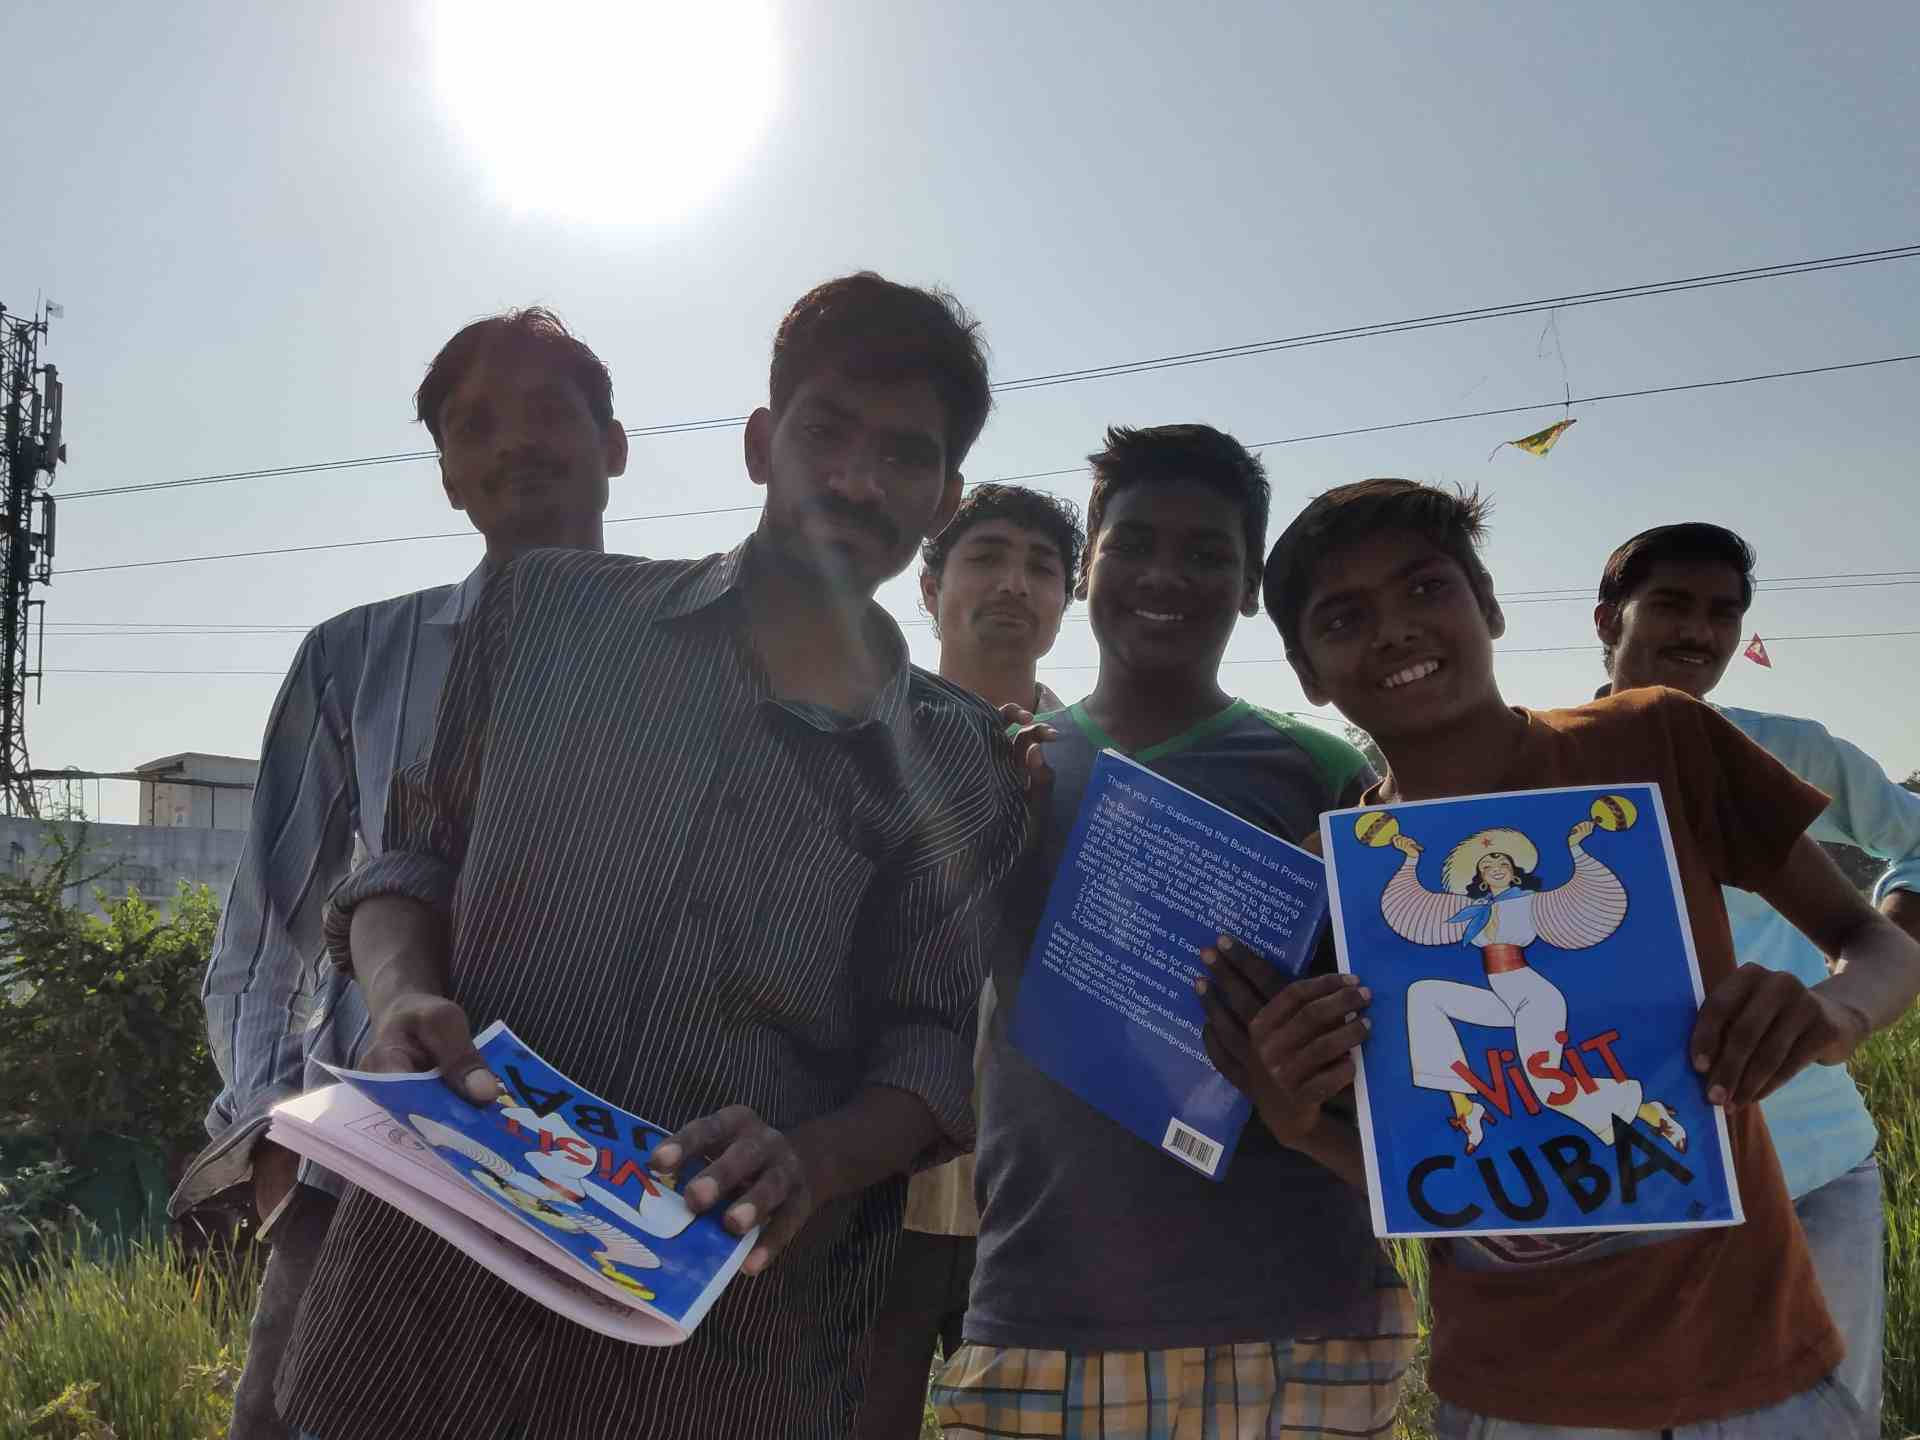 Picture of the Free Copies of the Visit Cuba Coloring Book Given out during the Rickshaw Run in India